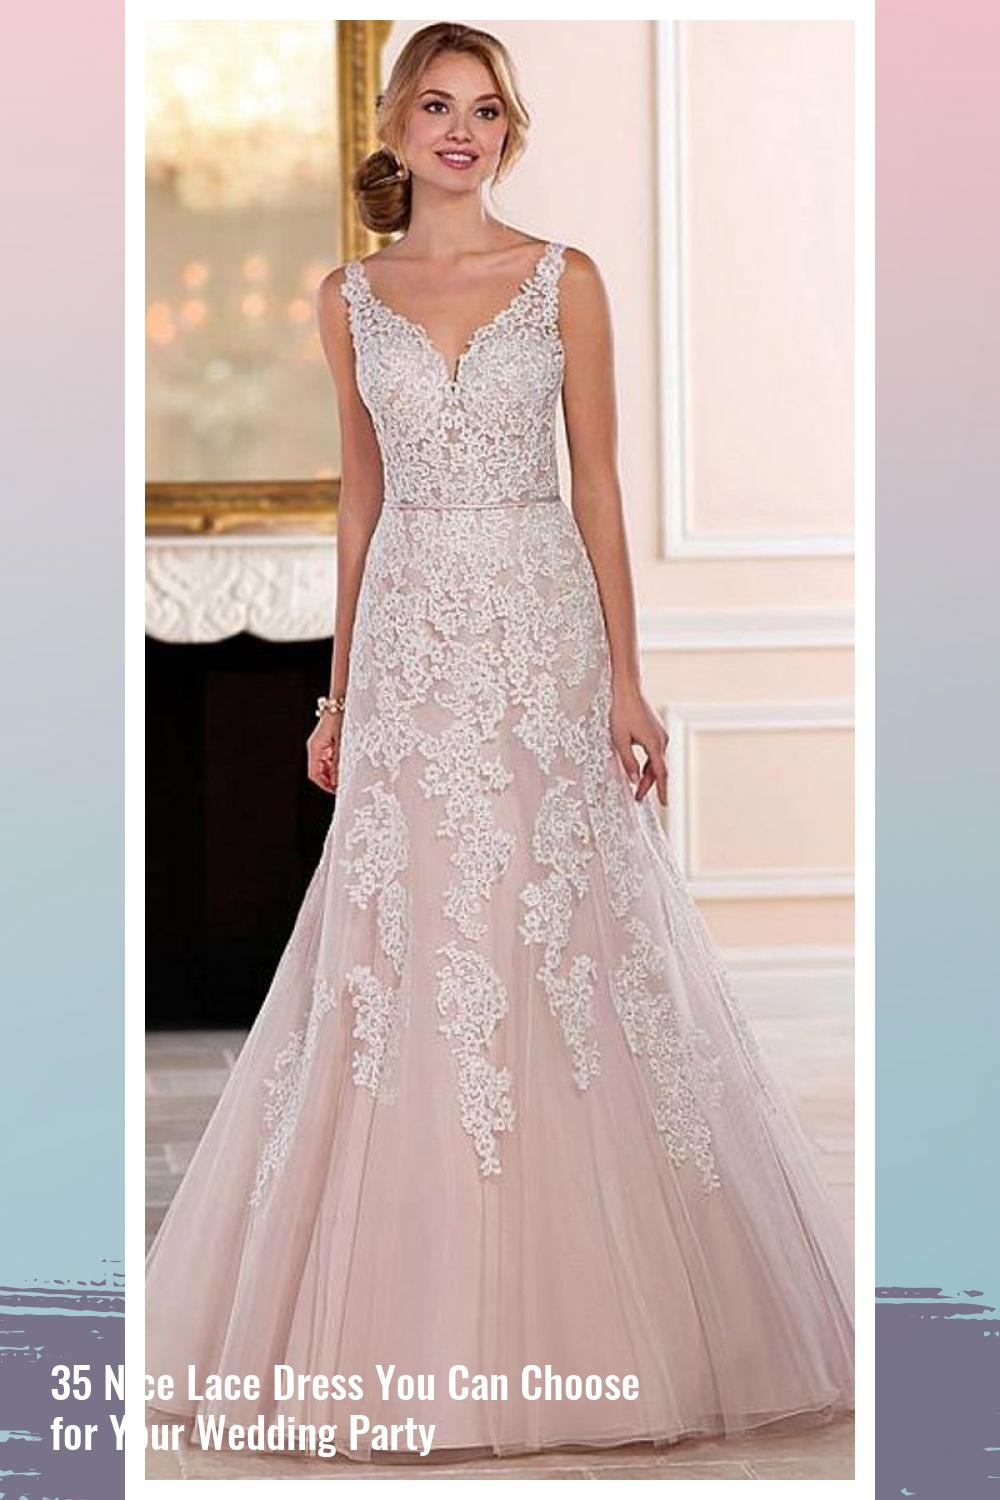 35 Nice Lace Dress You Can Choose for Your Wedding Party 14